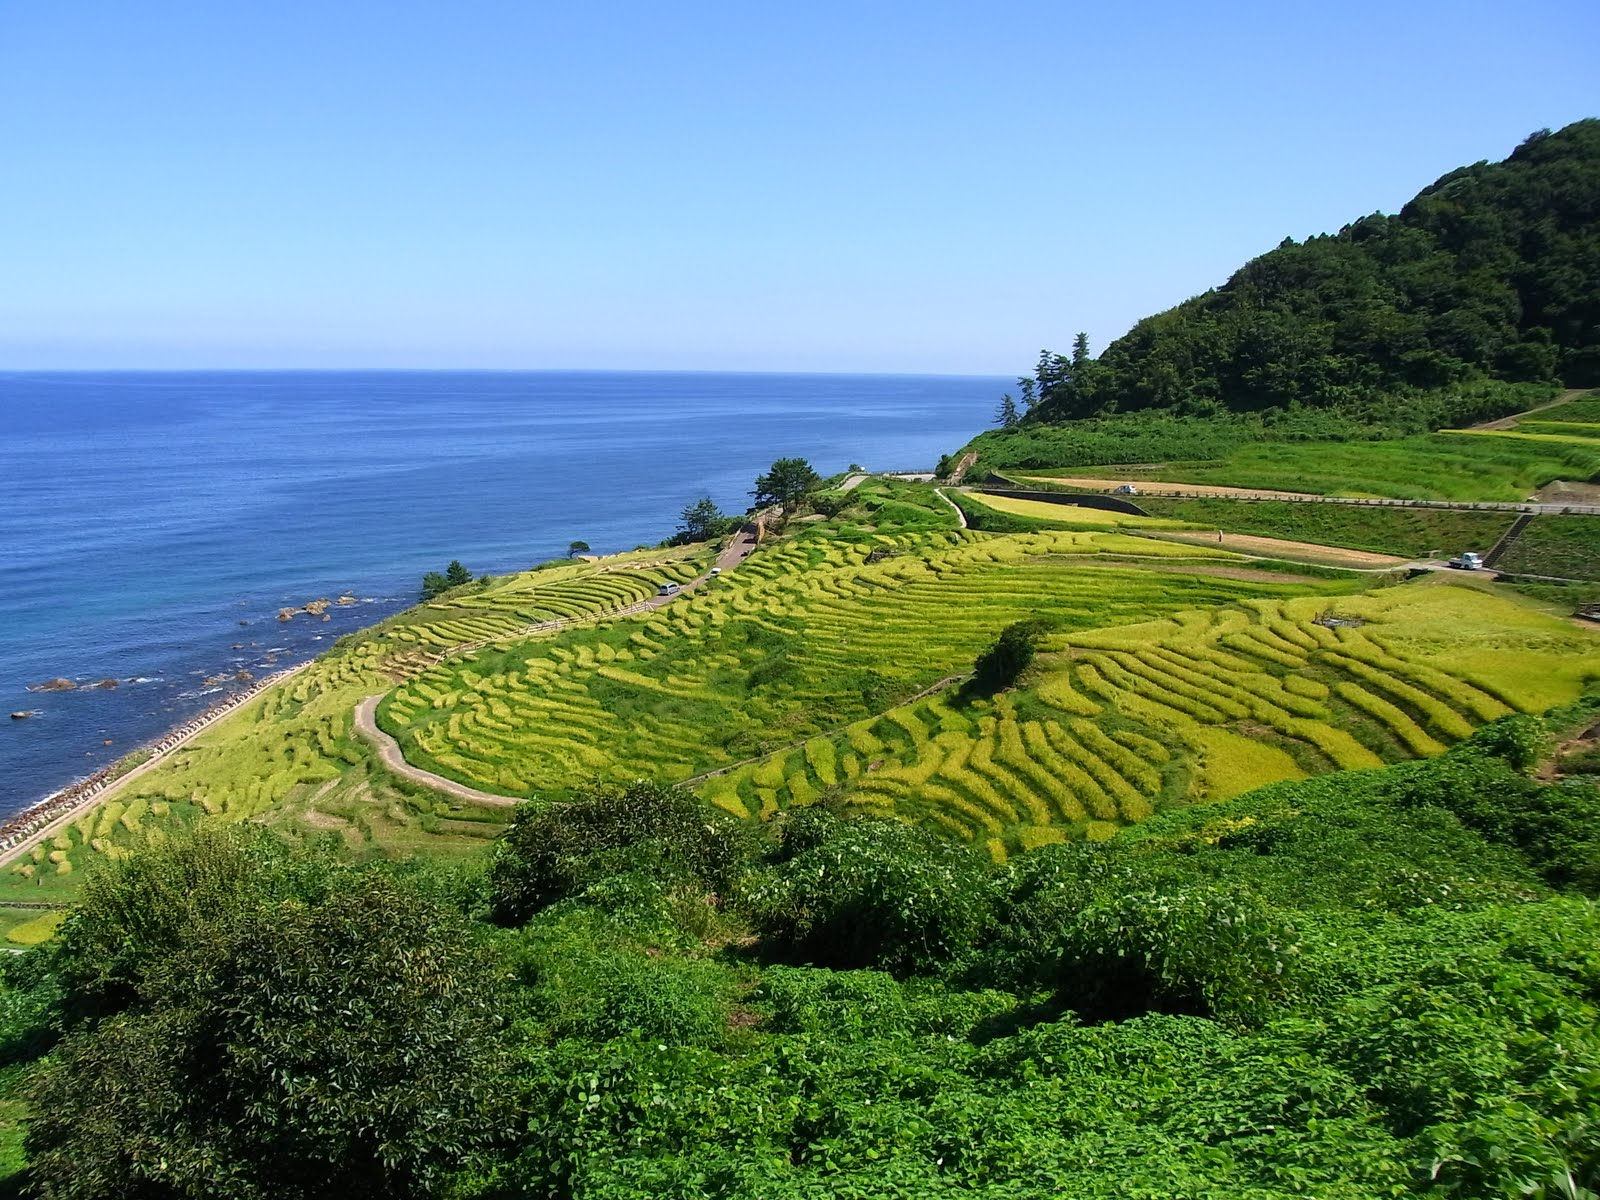 Noto Japan  City new picture : ... north coast of noto hanto noto hanto is very hilly with few large flat